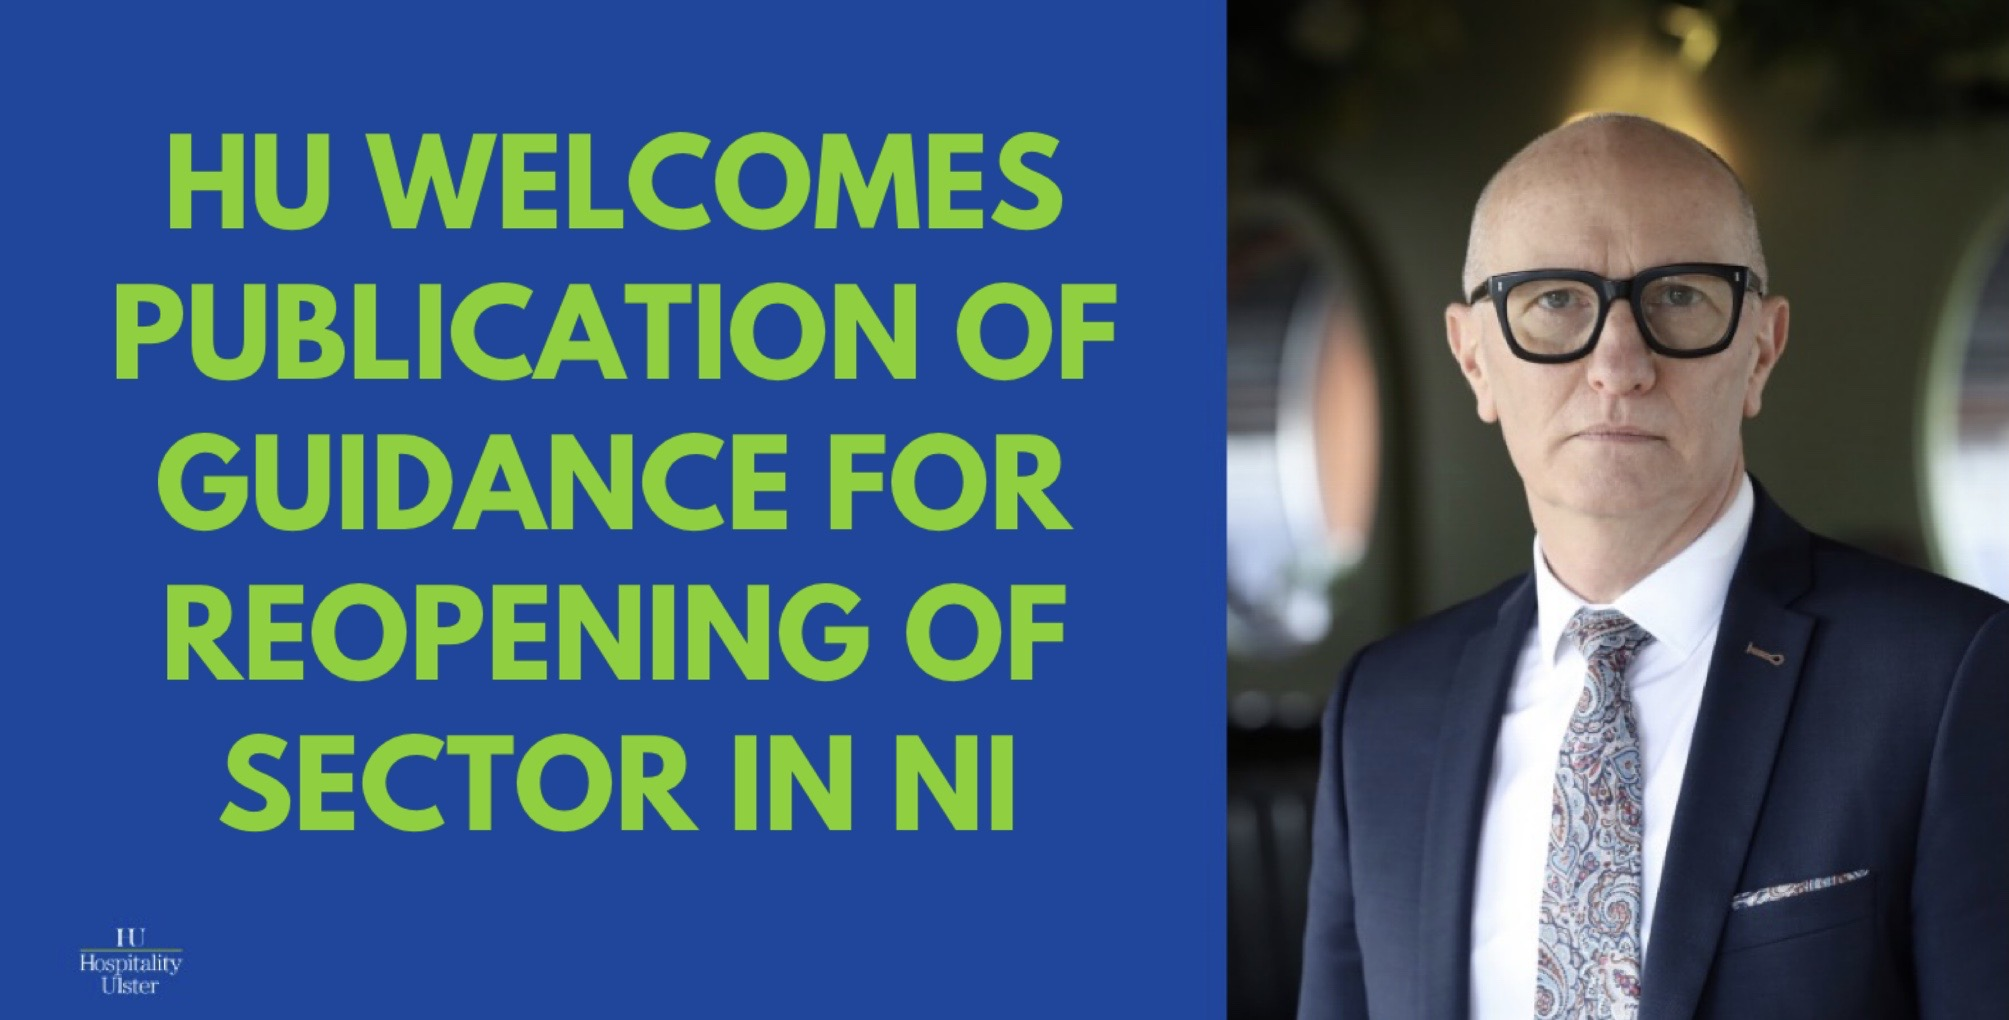 HU WELCOMES PUBLICATION OF GUIDANCE FOR REOPENING OF SECTOR IN NI